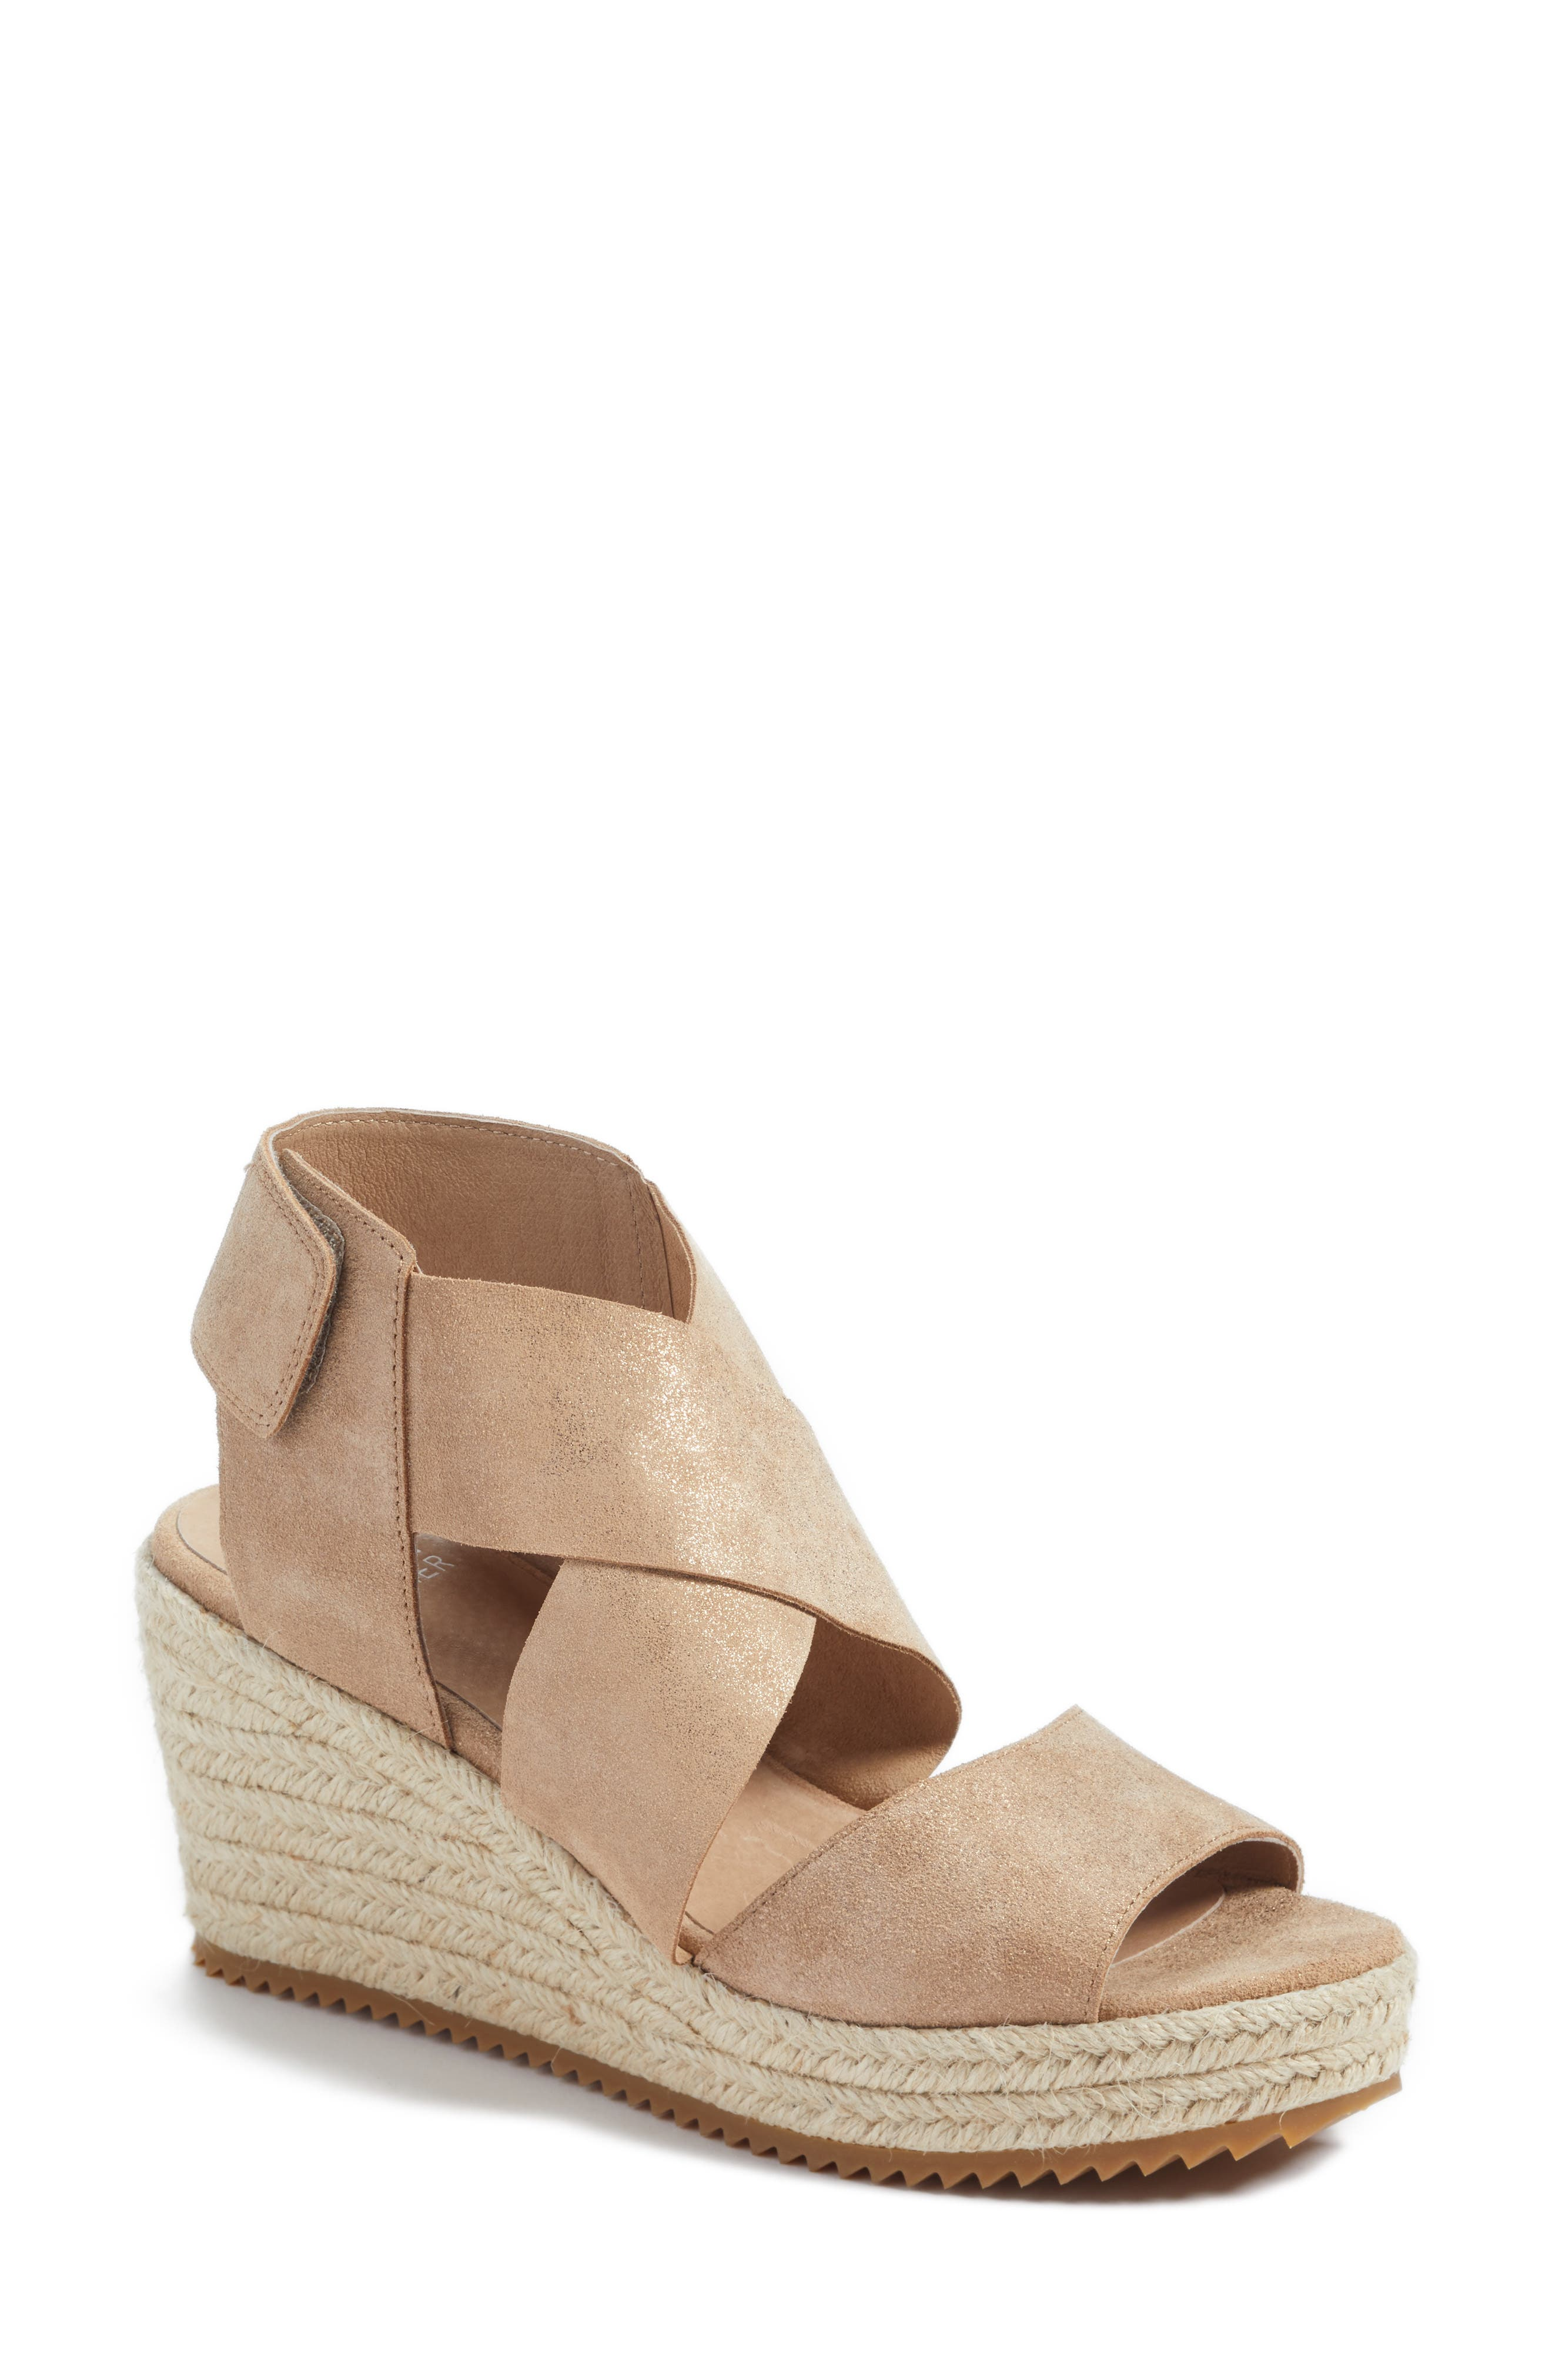 'Willow' Espadrille Wedge Sandal,                         Main,                         color, LIGHT GOLD STARRY LEATHER